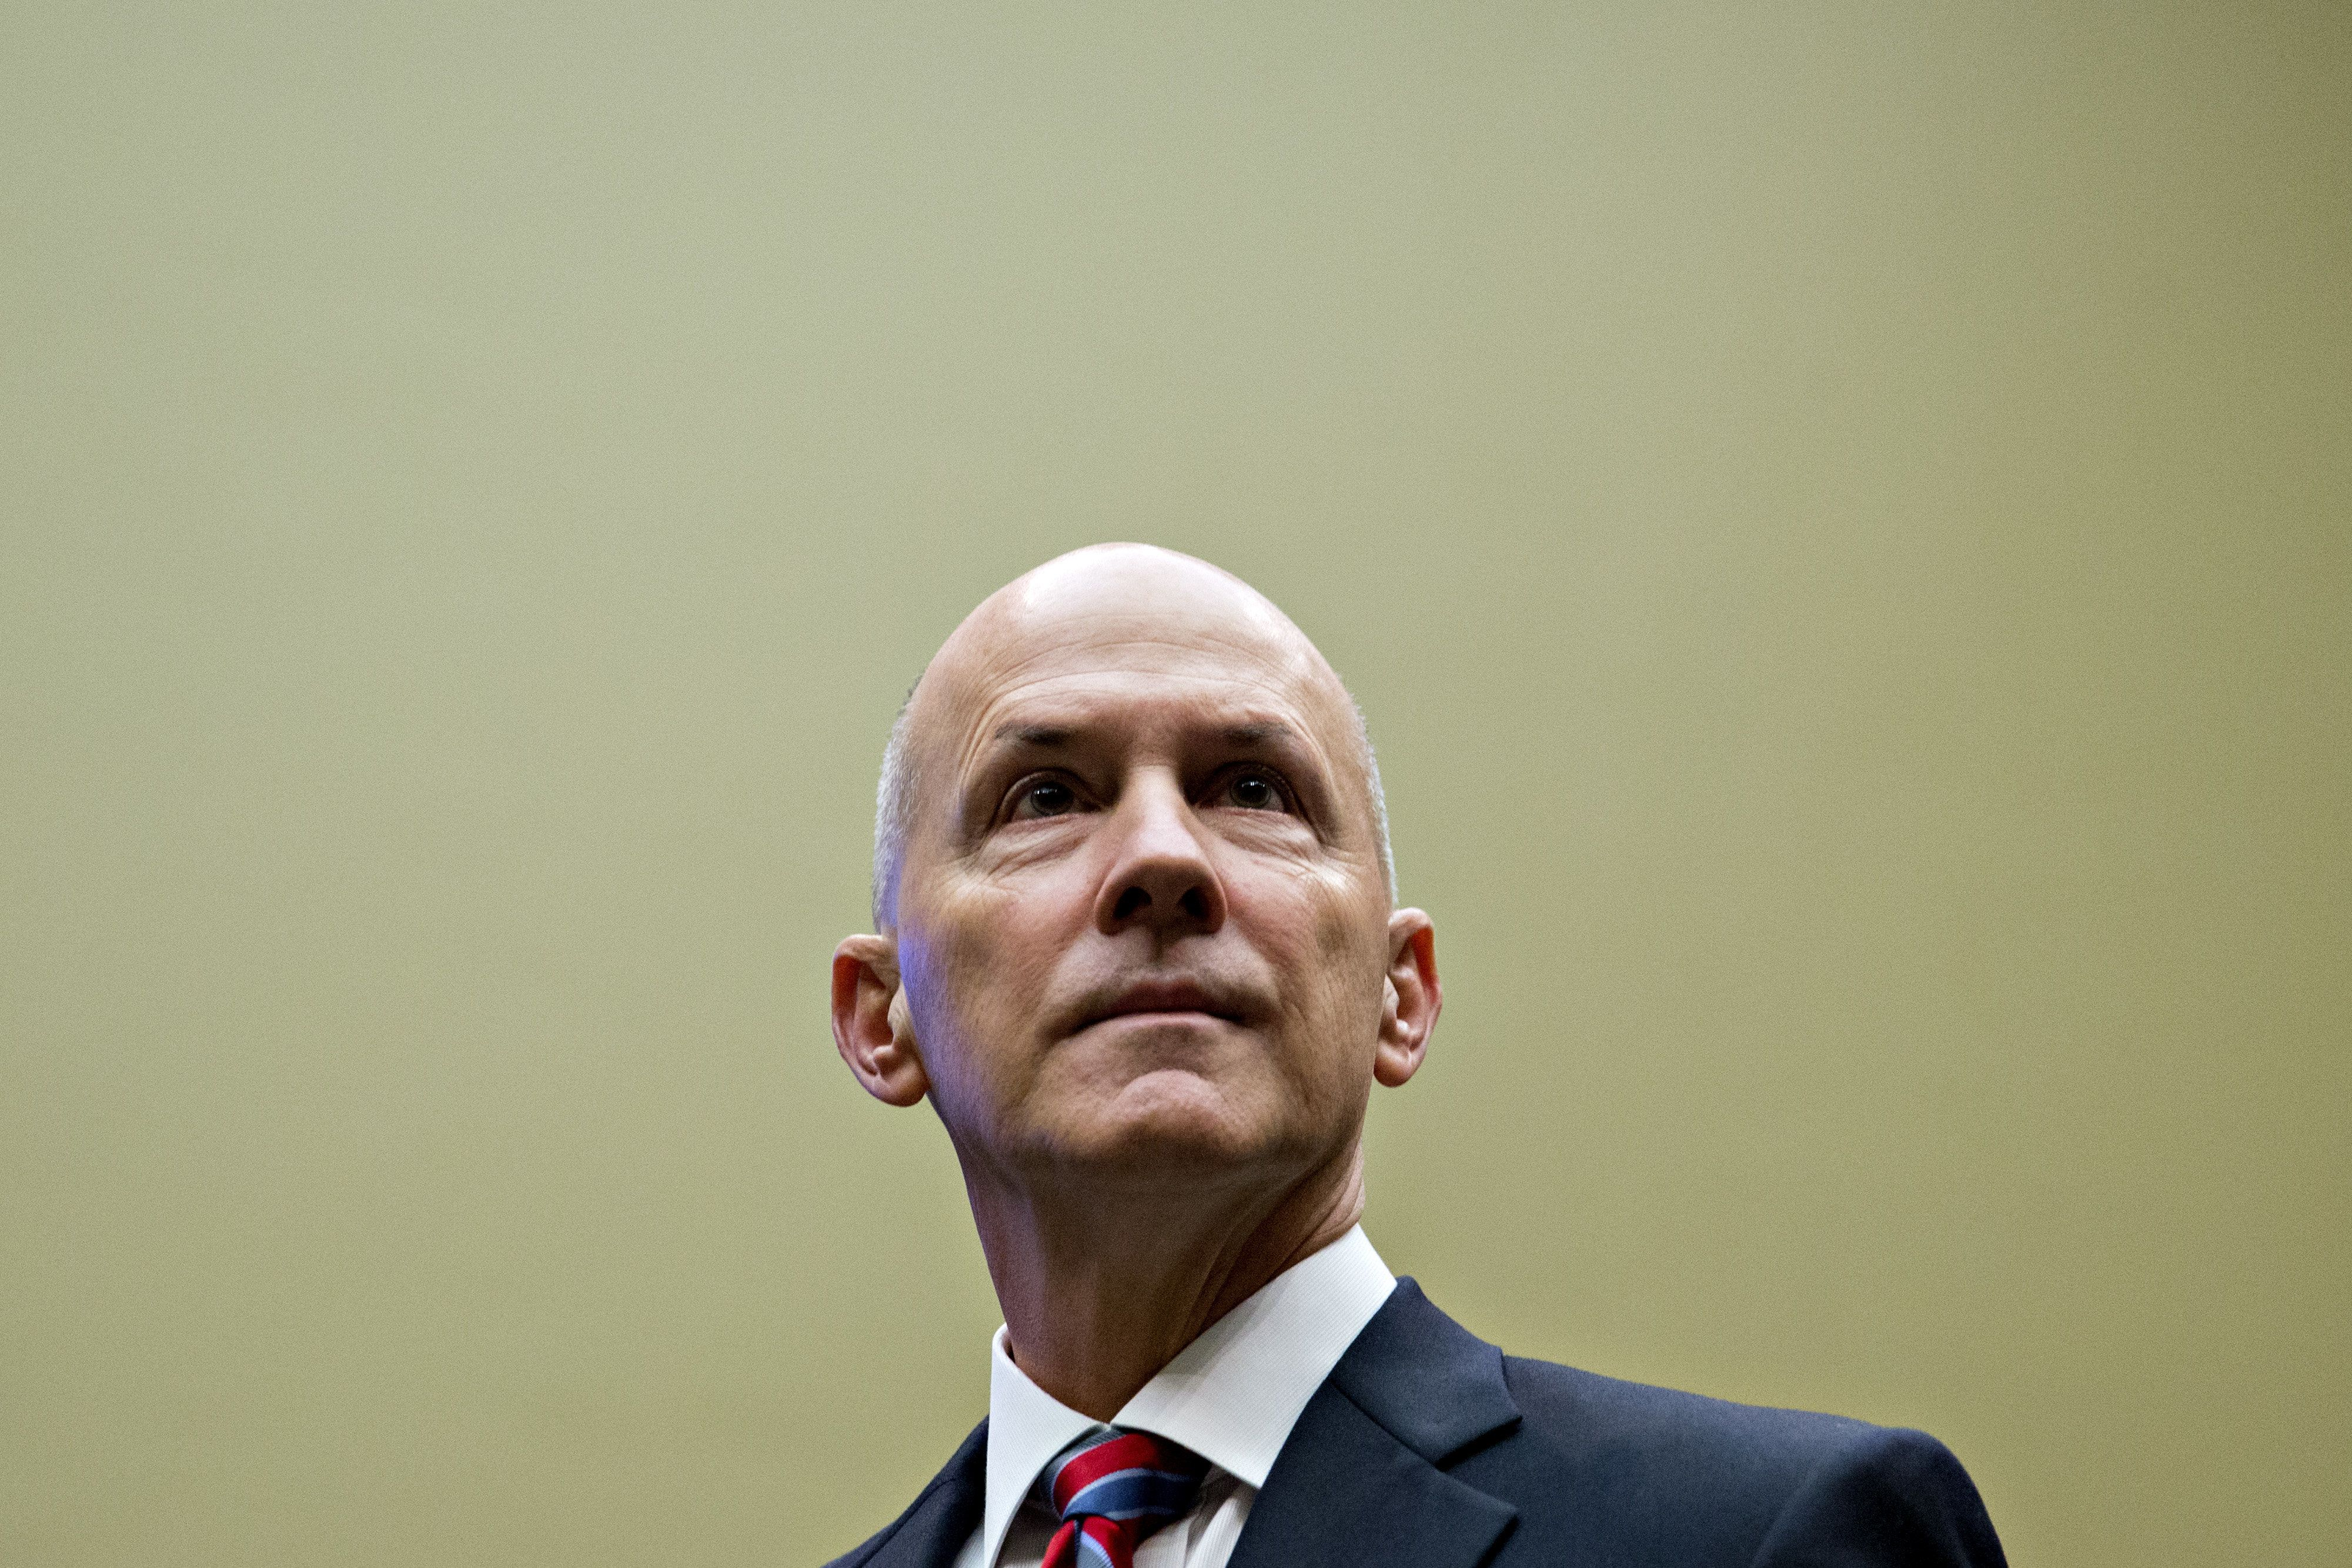 Richard Smith, former chairman and chief executive officer of Equifax Inc., arrives to a House Energy and Commerce Committee hearing in Washington, D.C., U.S., on Tuesday, Oct. 3, 2017. Smith said the credit-reporting company didn't meet its responsibility to protect sensitive consumer information, confirming that the failure to fix a software vulnerability months ago led to the theft of more than 140 million Americans personal data. Photographer: Andrew Harrer/Bloomberg via Getty Images